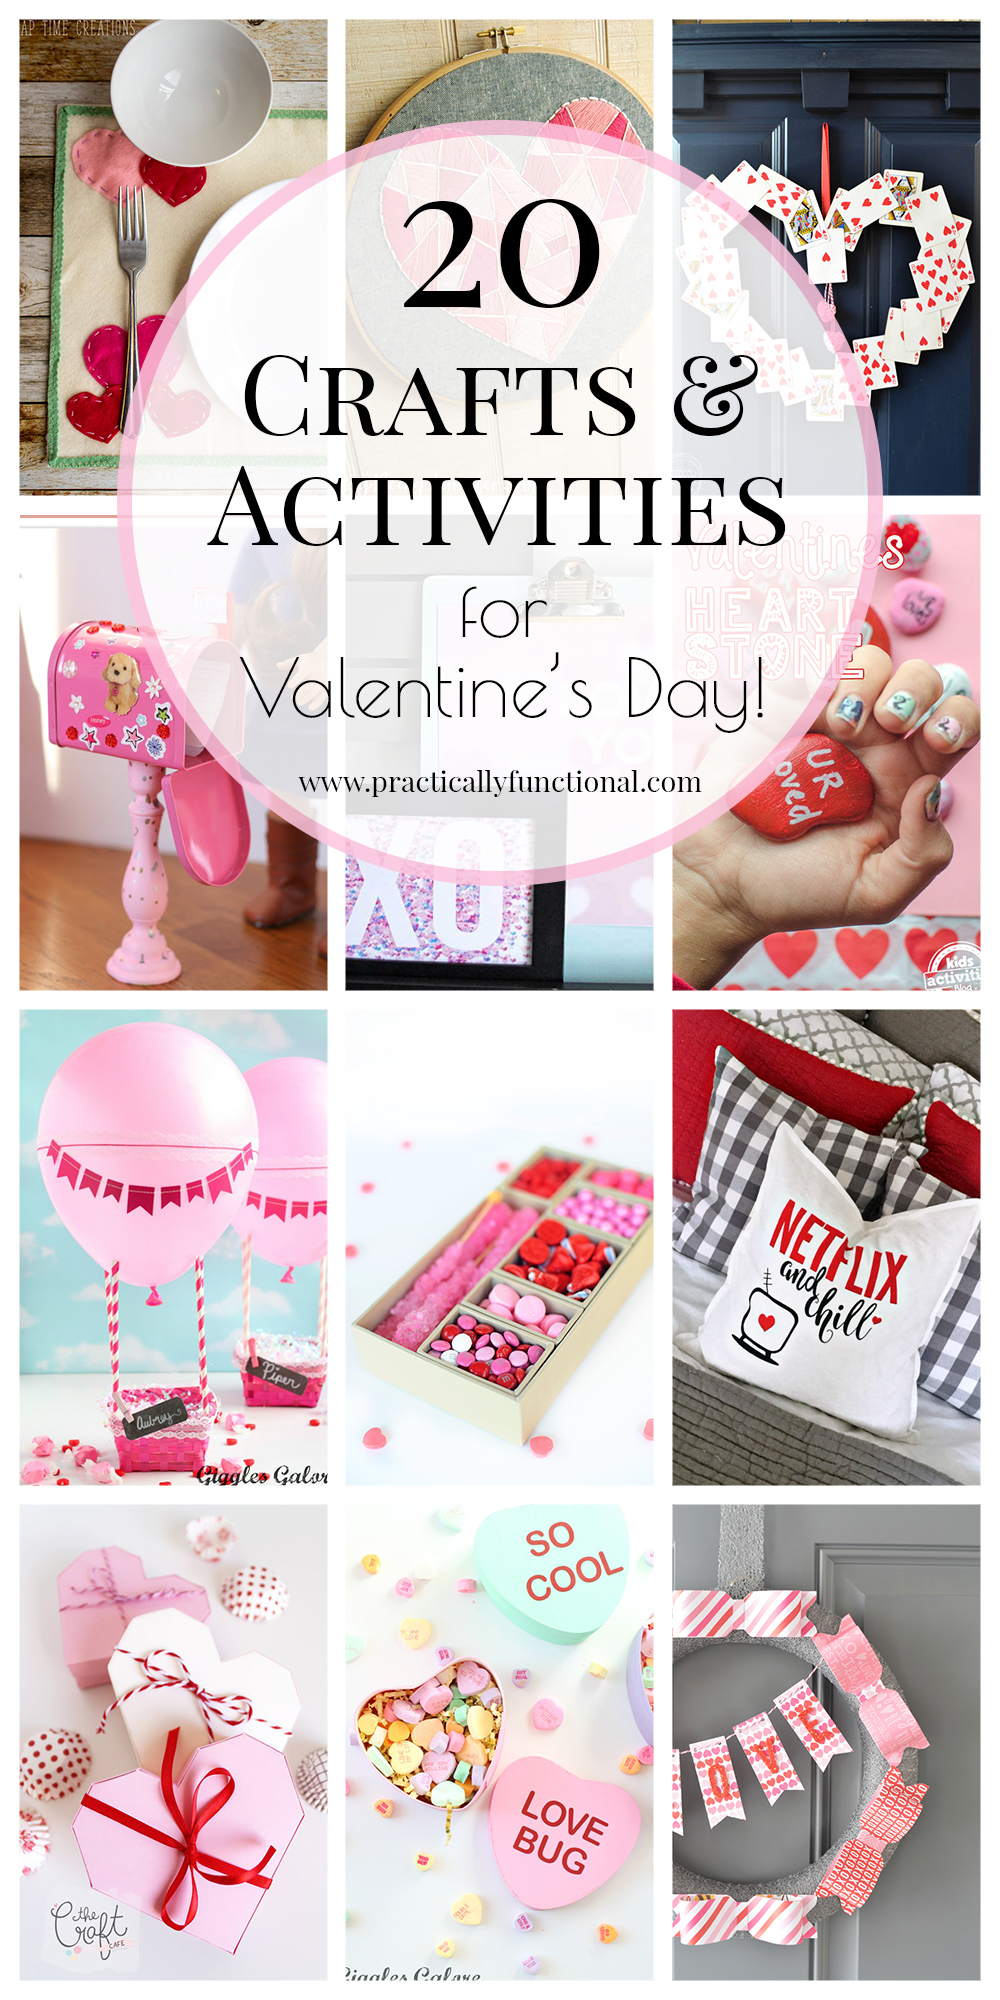 20 fun valentines crafts and activities to celebrate the holiday!